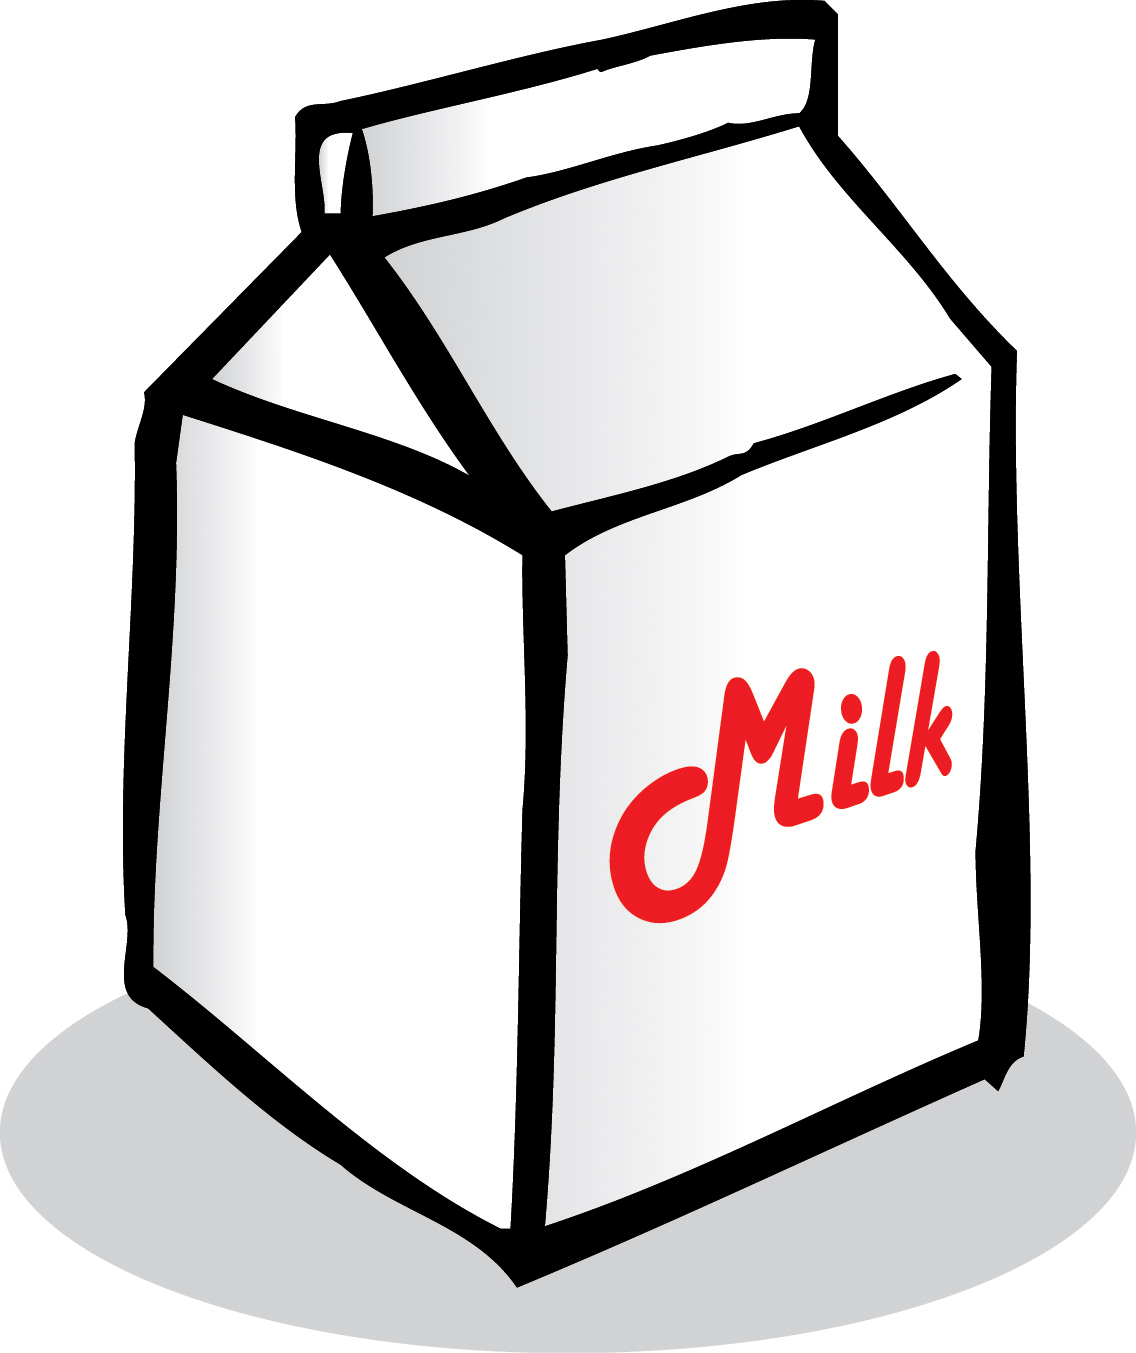 The Milk Carton Is An Example Of Continued Bad Package Design  The